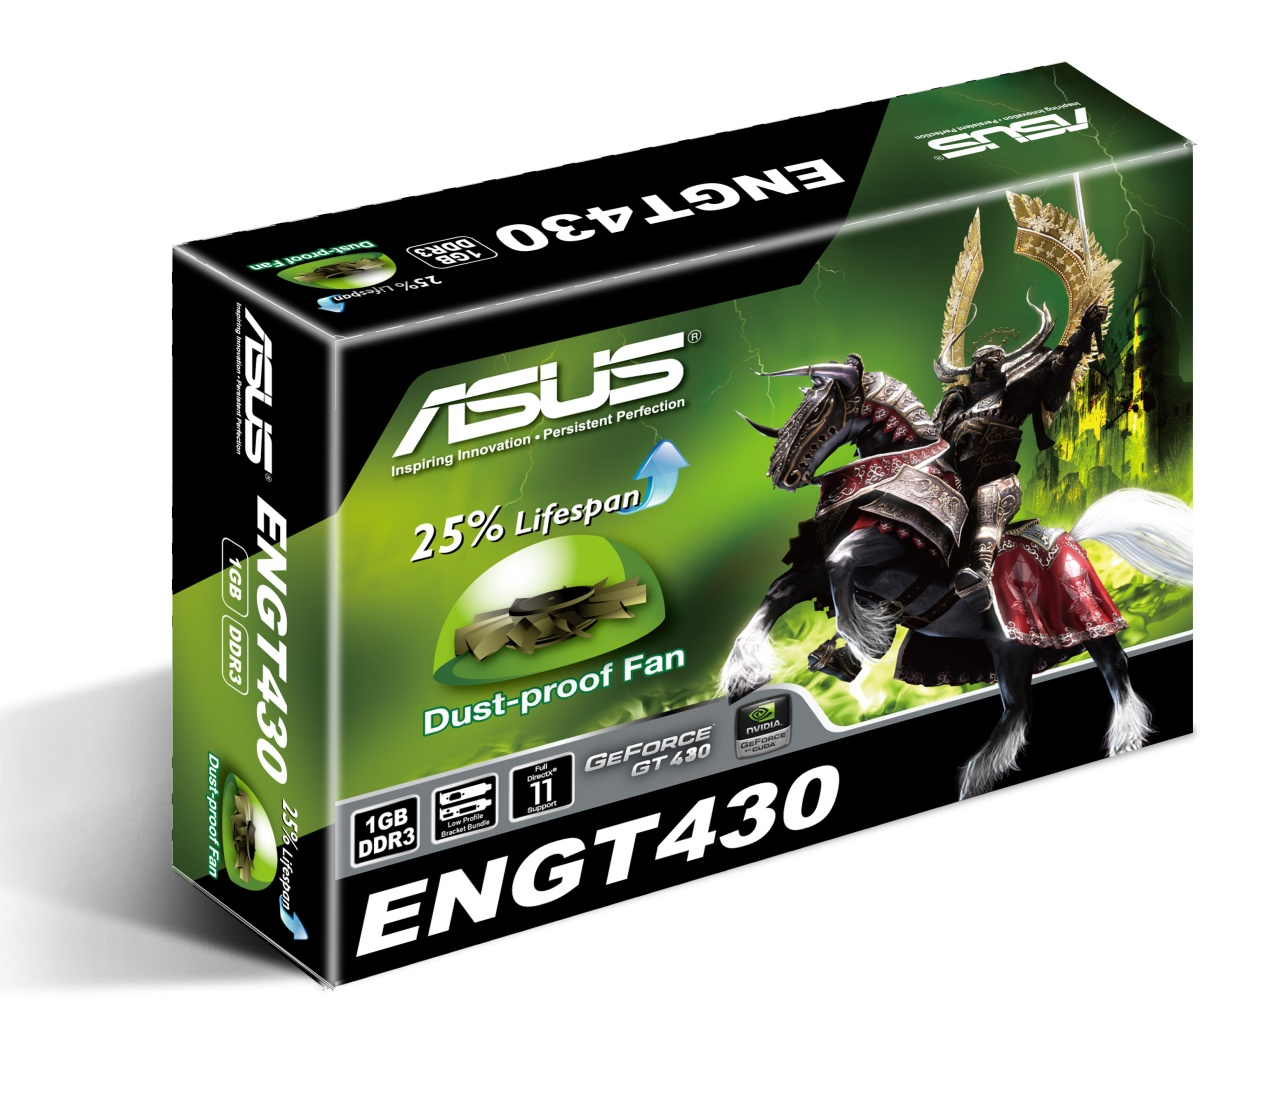 big_geforce_gt_430_box.jpg